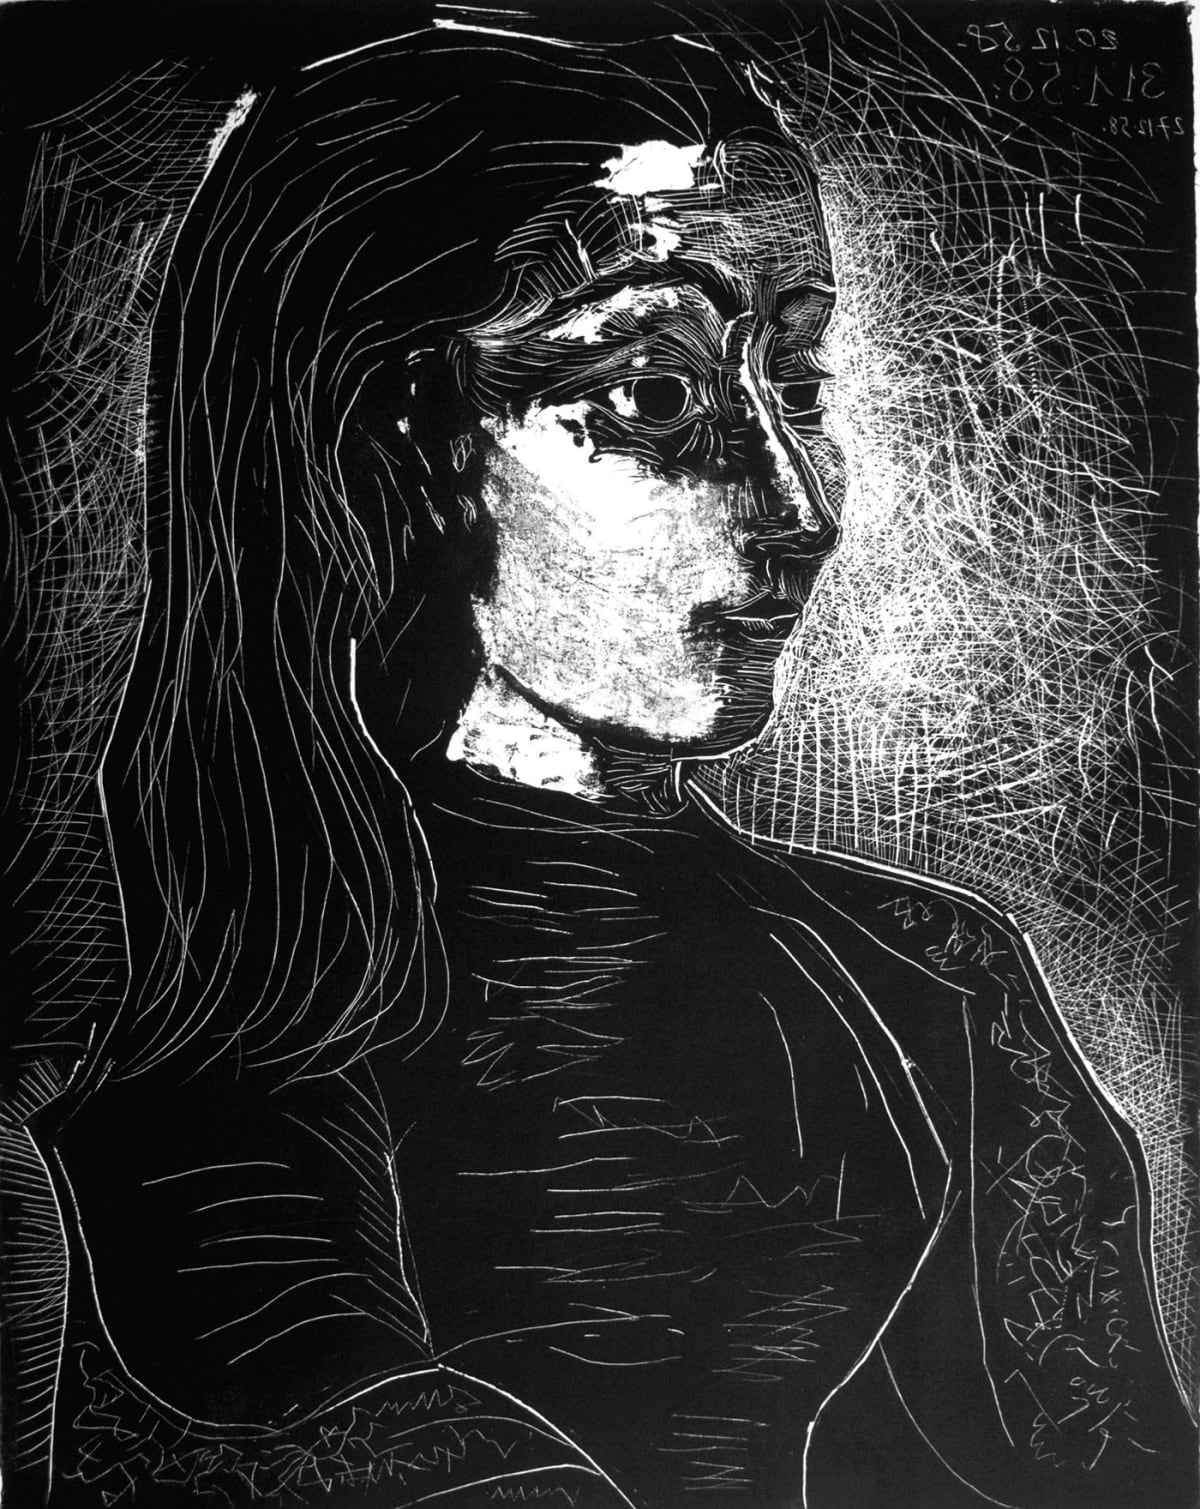 Pablo Picasso Jacqueline de profil à droite, 1958 Lithograph on Arches wove paper Image 557 x 440 mm. Sheet 655 x 502 mm. Numbered 48/50 (there were also six proofs for the artist and printer)